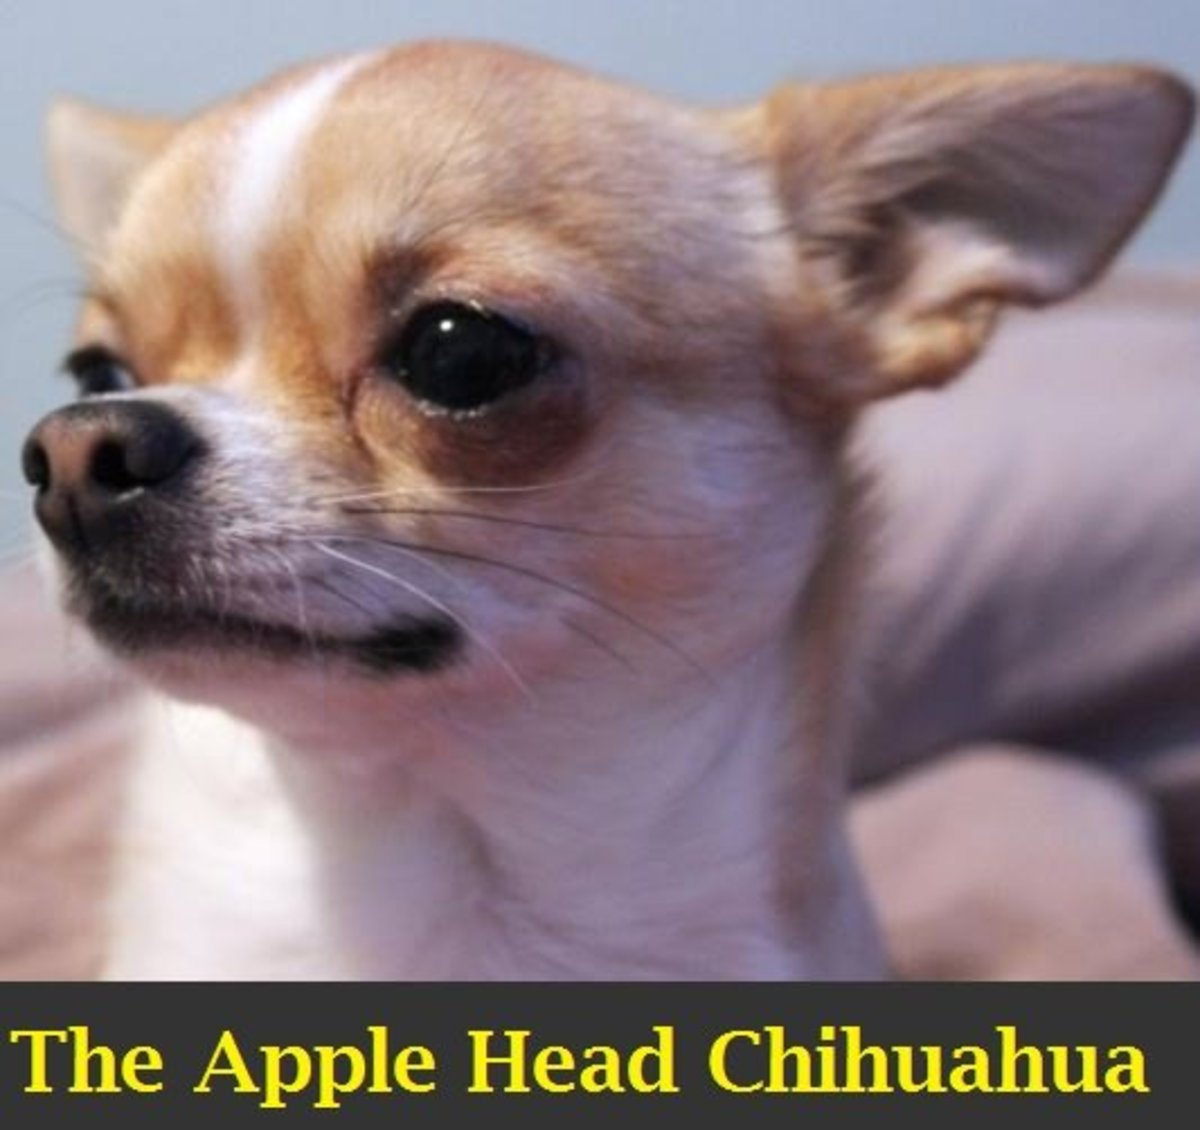 A Guide to the Apple Head Chihuahua